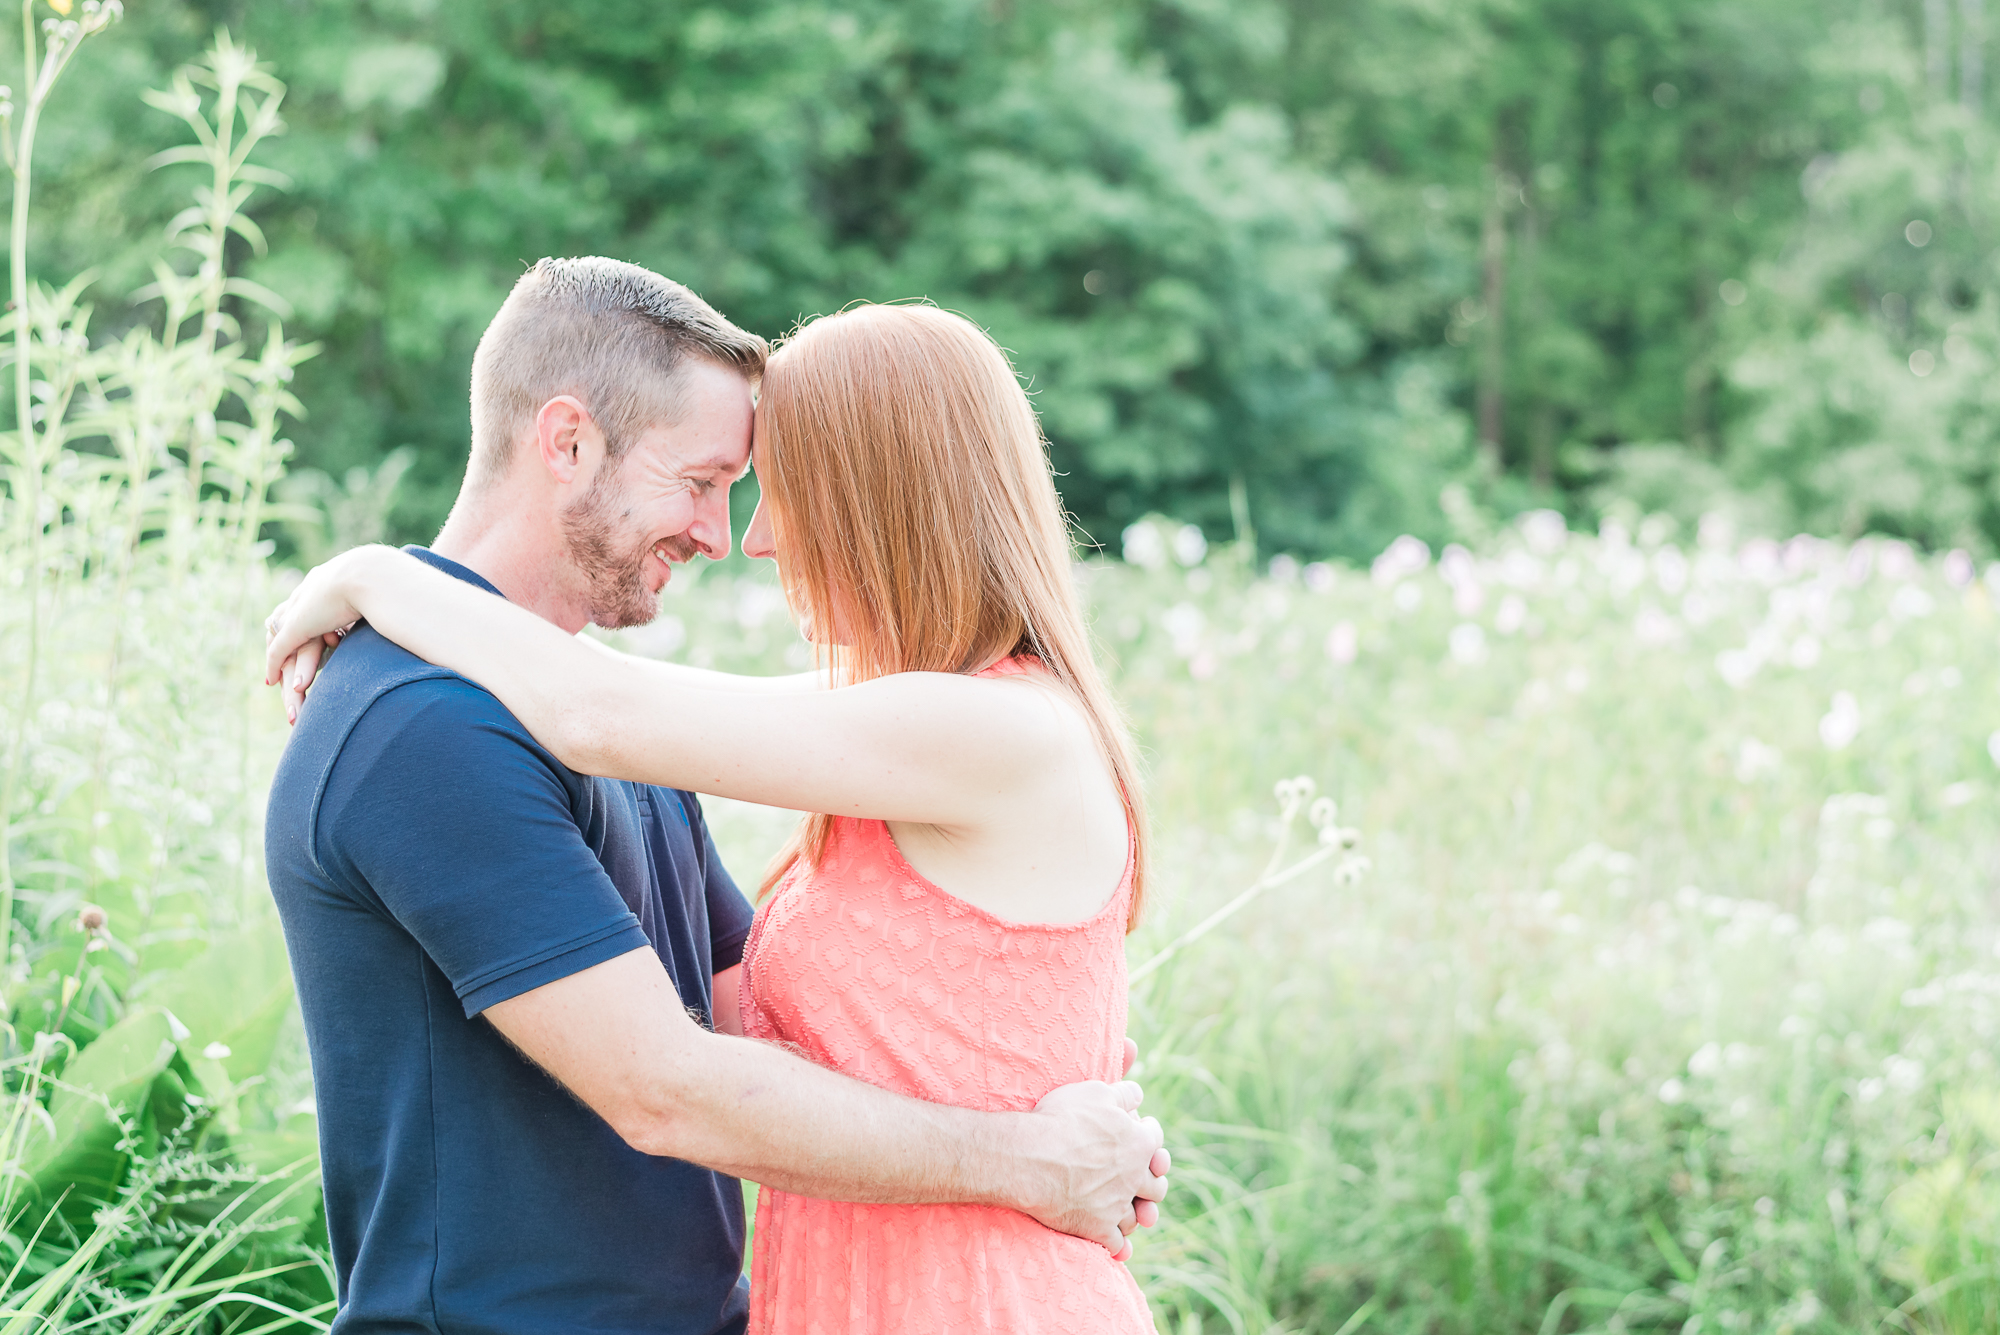 AB Favorites_Katy+Brian_Engagement Session_Brecksville Reservation_Brecksville_Ohio-18.jpg